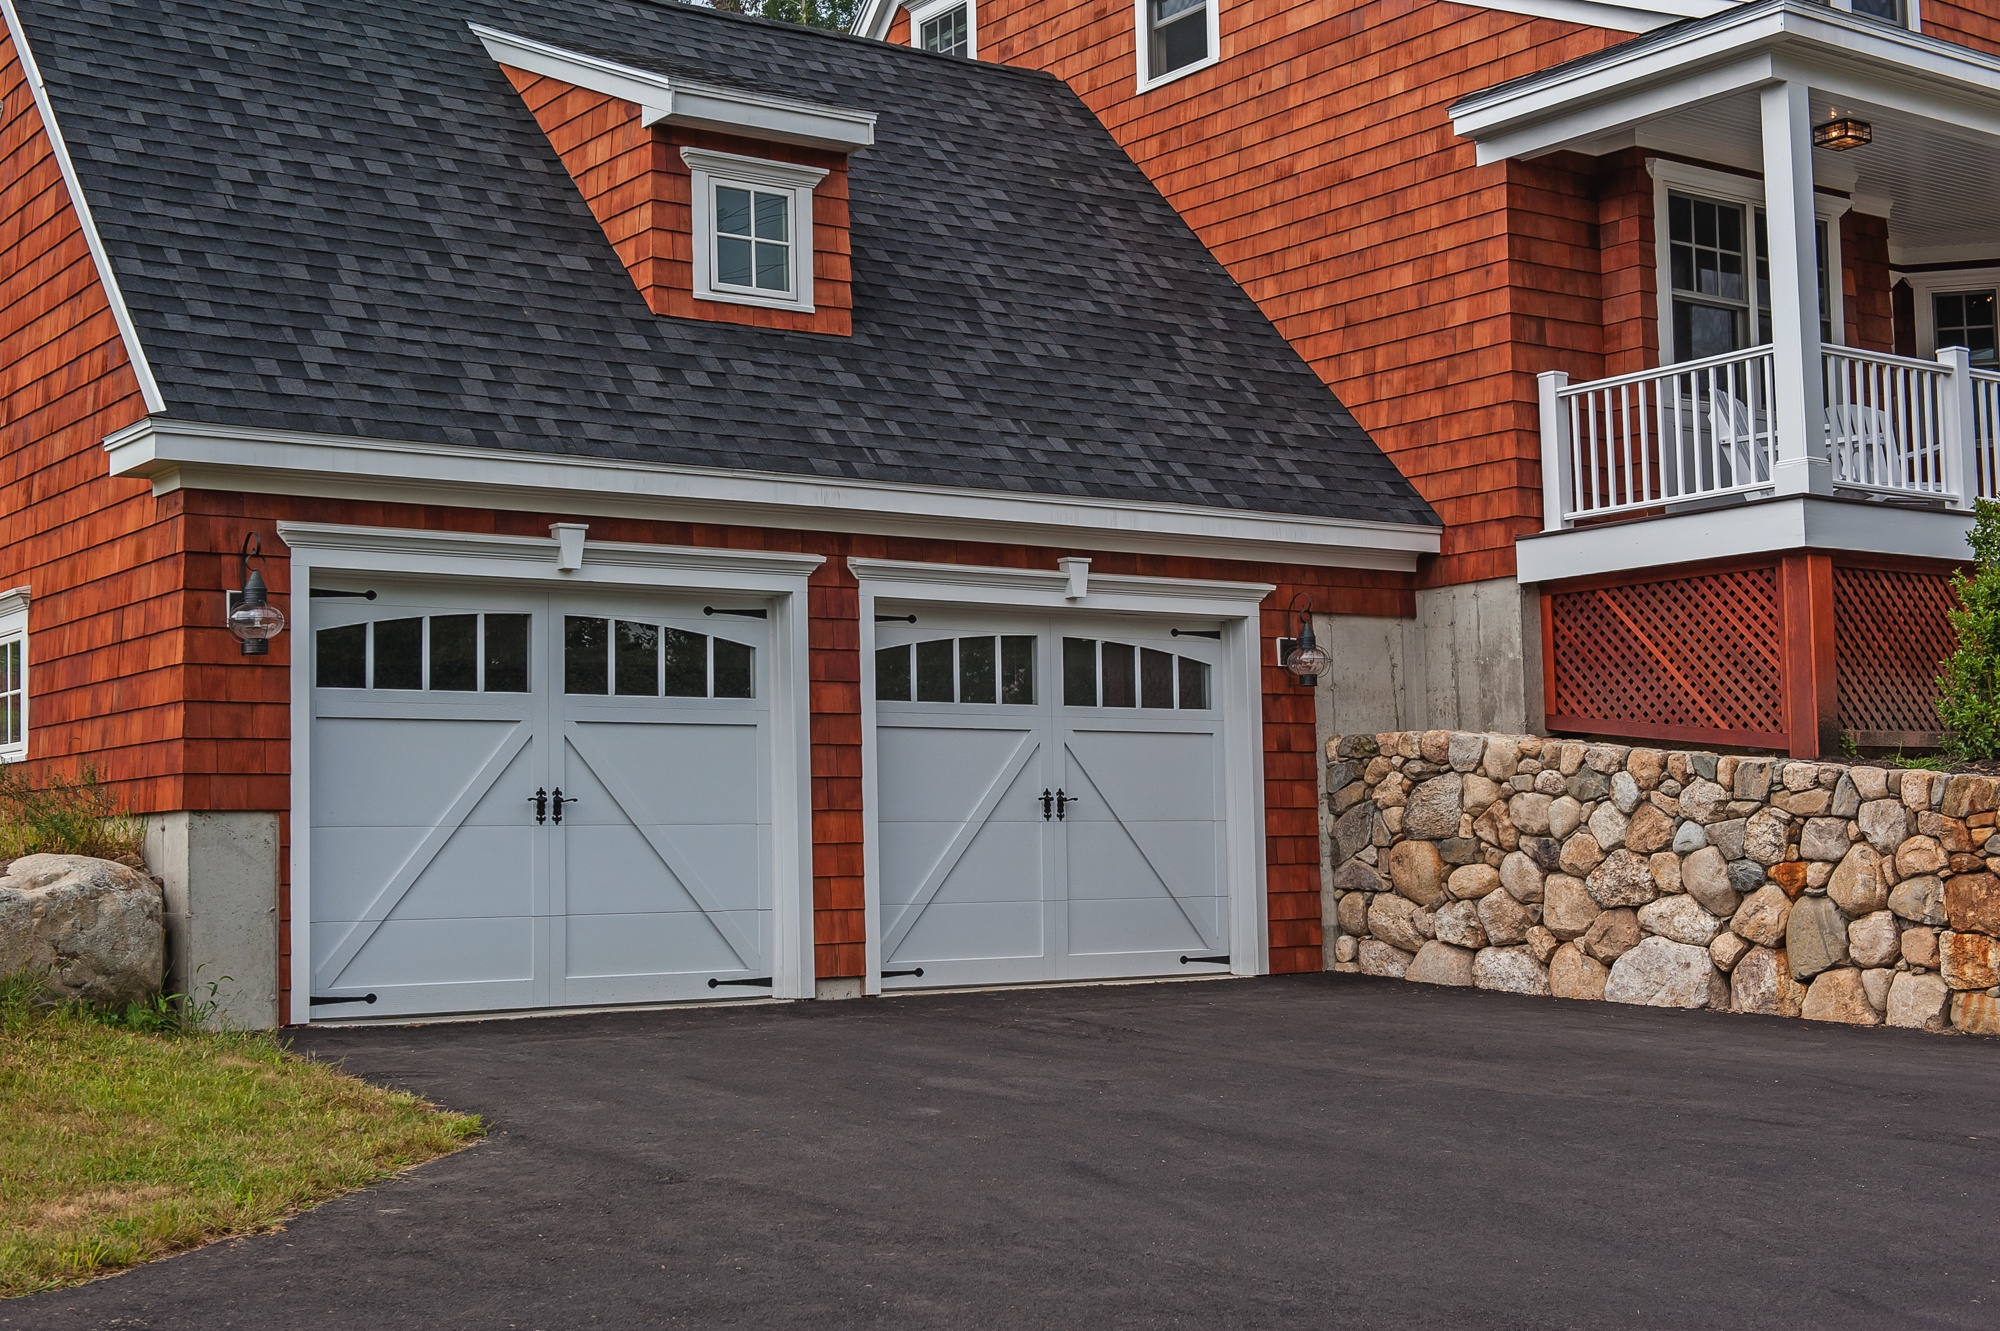 Carriage garage doors chi0828130232g carriage garage doors carriage garage doors chi0828130232g carriage garage doors publicscrutiny Image collections